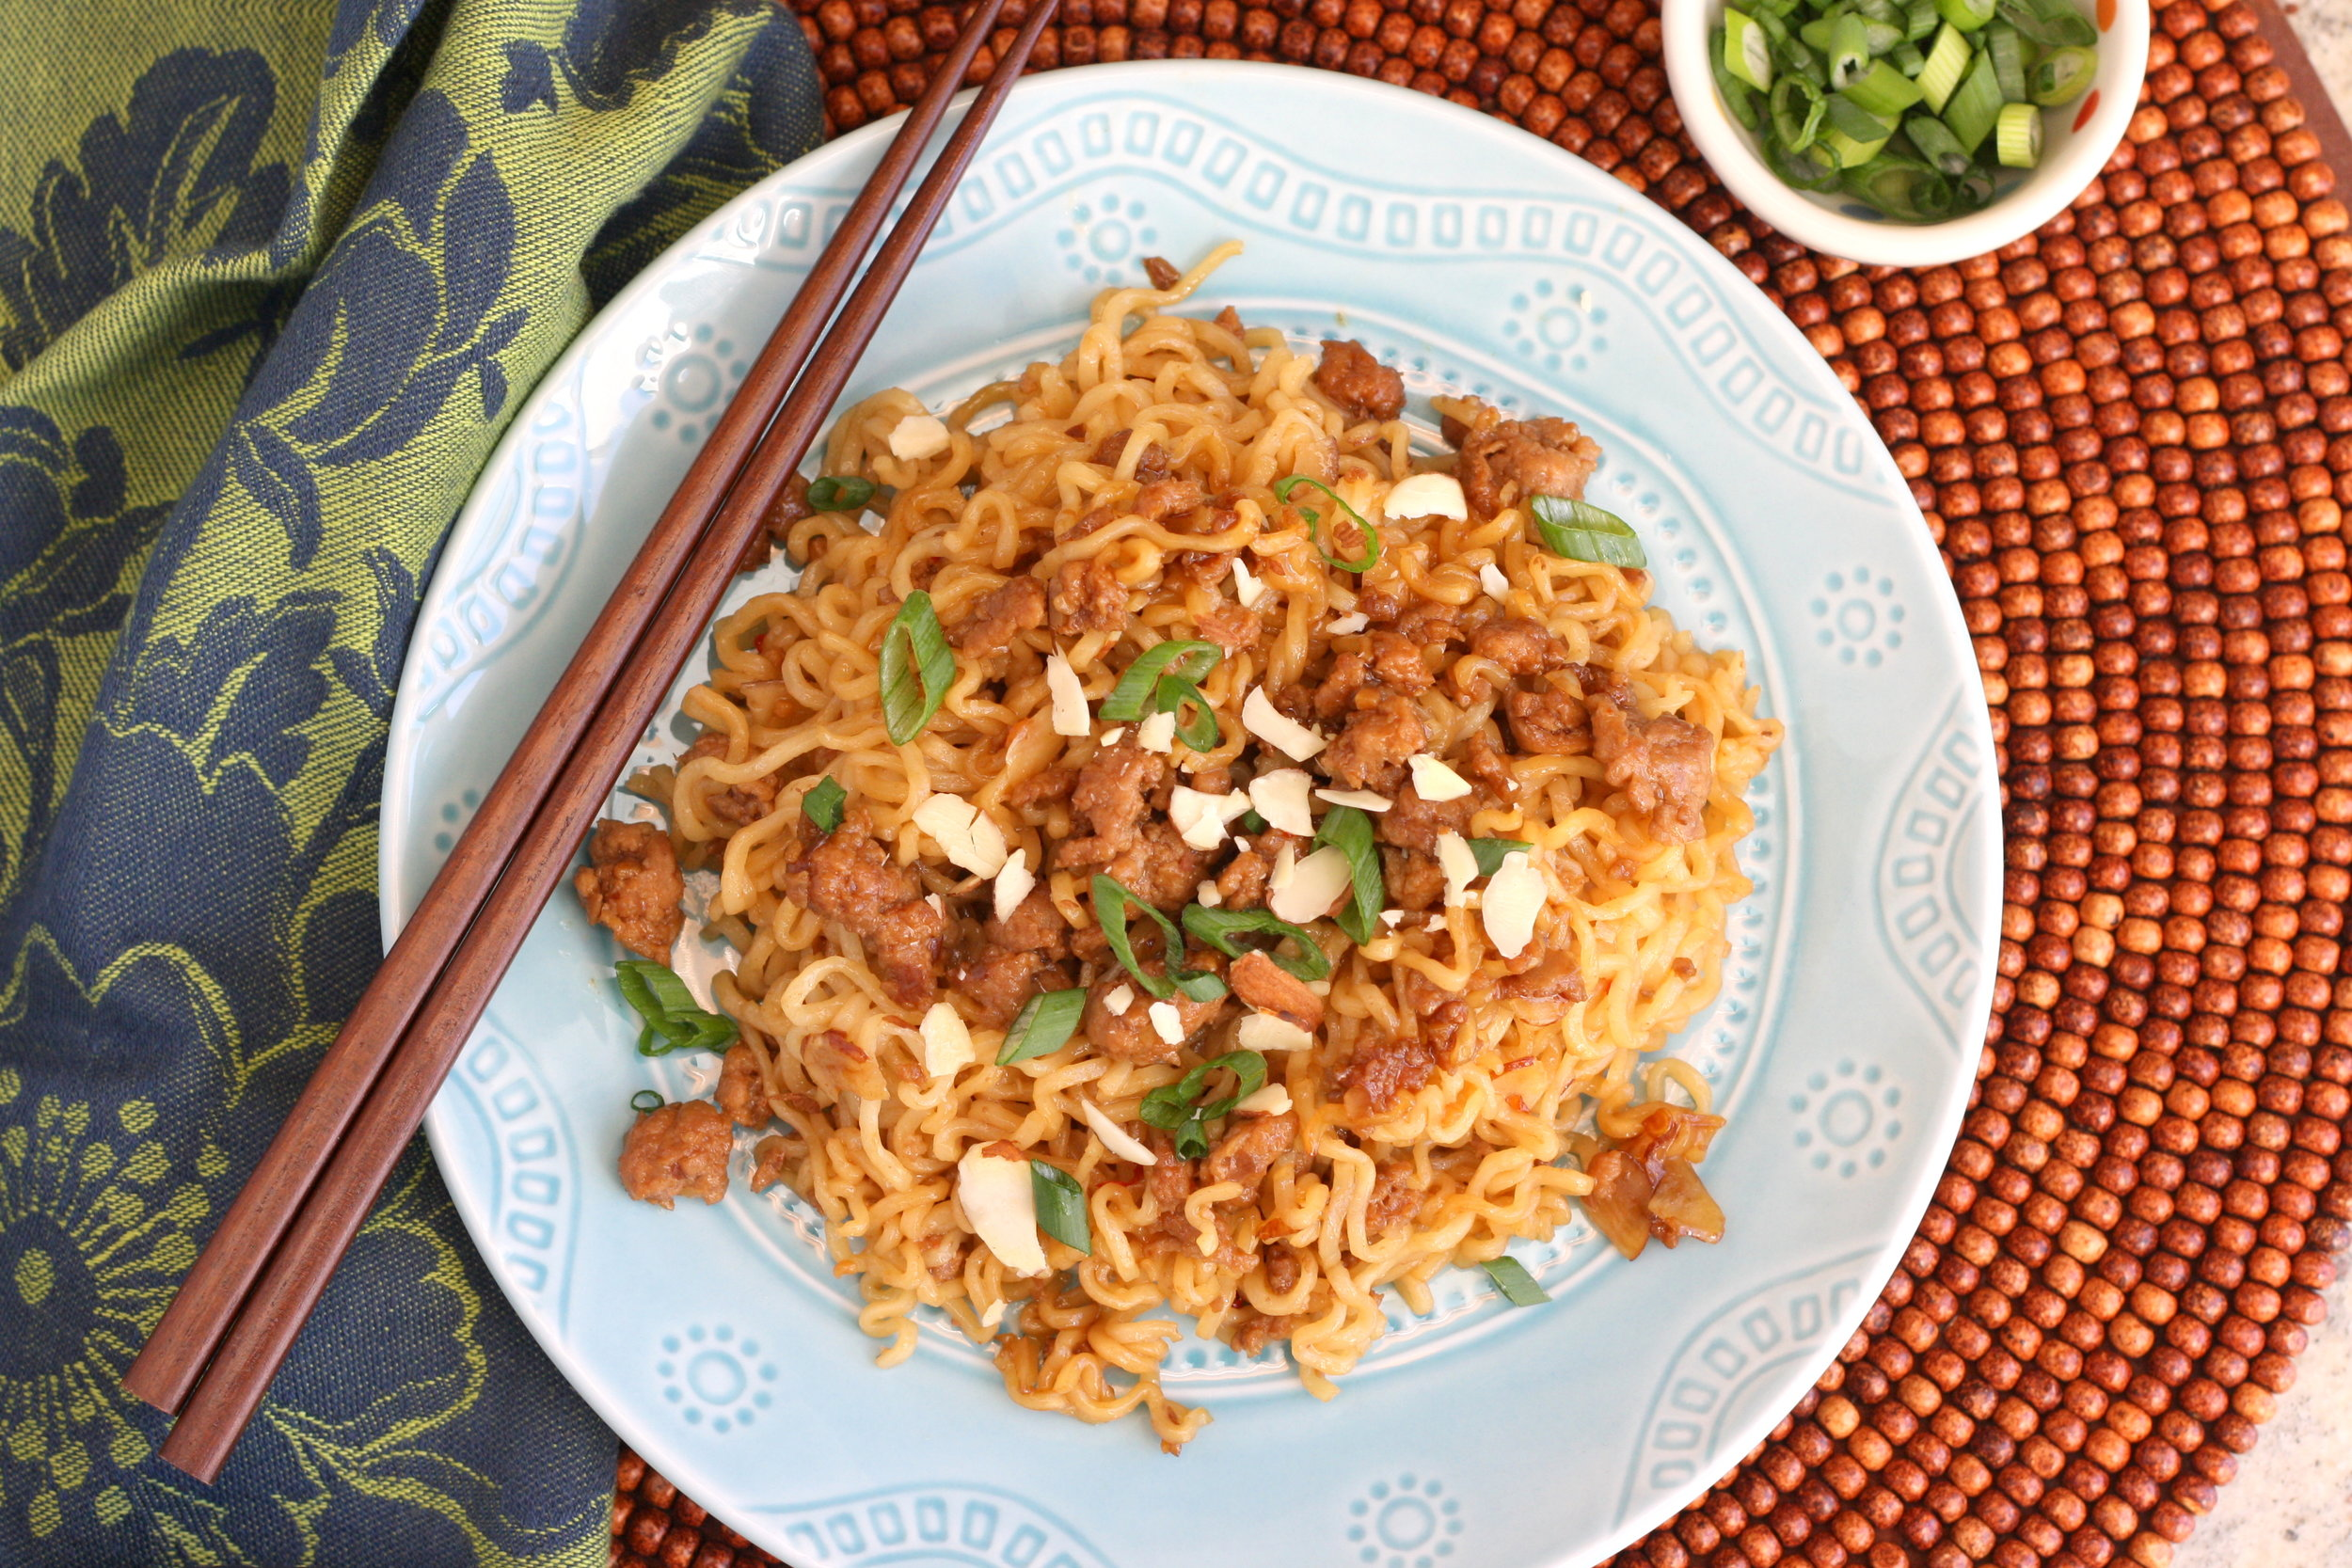 Pork Dragon Noodles2.JPG